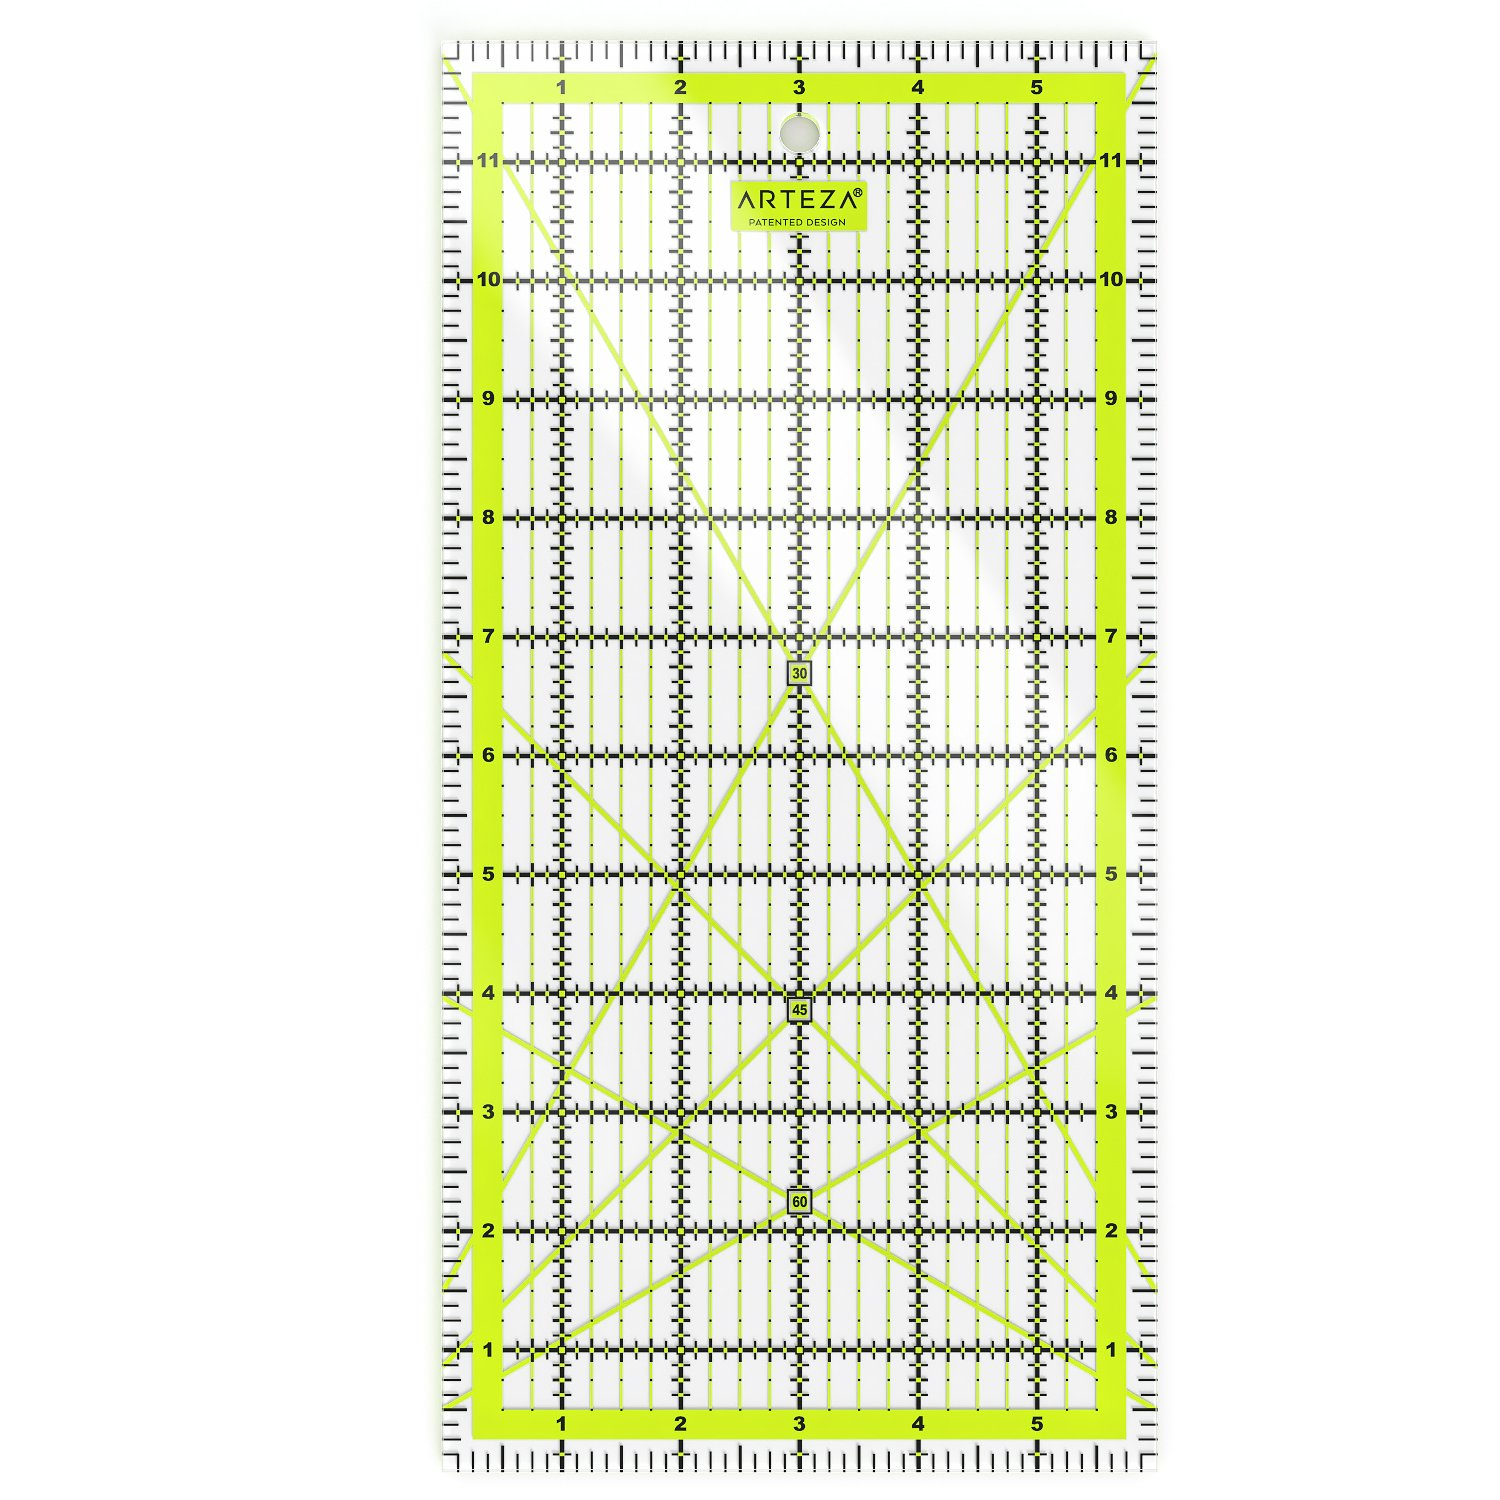 ARTEZA Quilting Ruler, Laser Cut Acrylic Quilters' Ruler with Patented Double Colored Grid Lines for Easy Precision Cutting, 6'' Wide x 12'' Long for Quilting, Sewing & Crafts, Black & Lime Green by ARTEZA